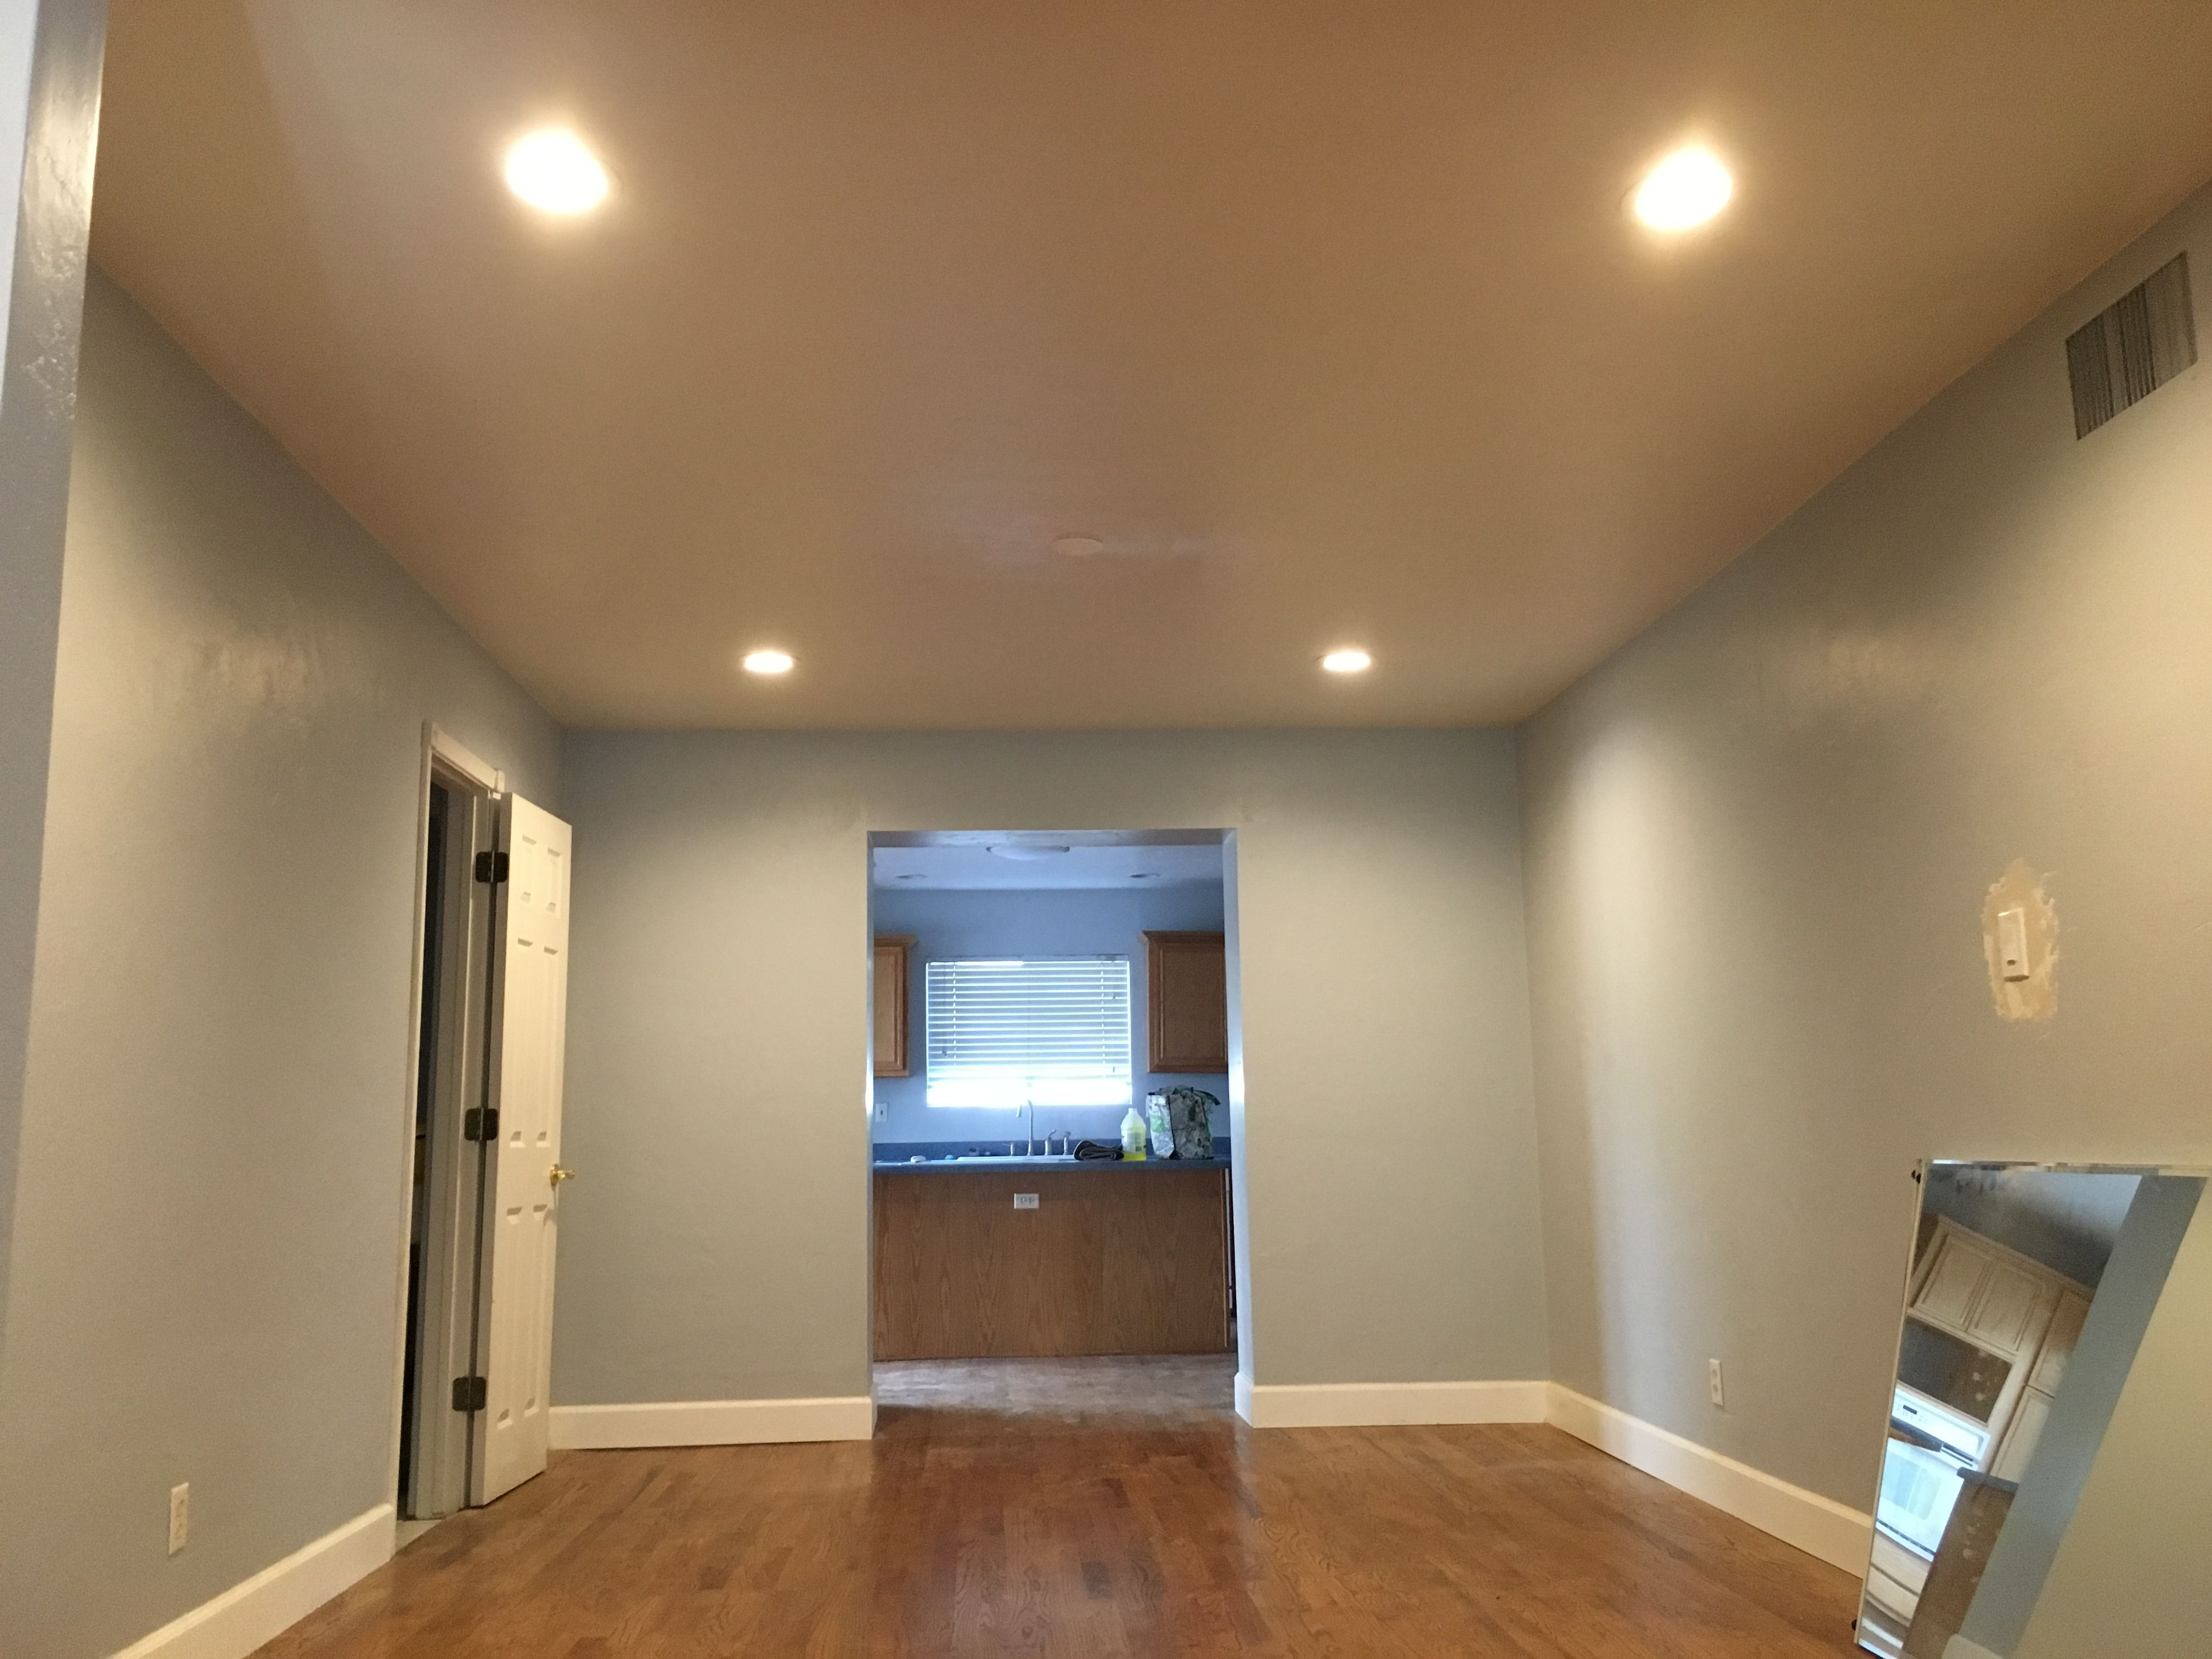 Installed 4 X 6  Inch Recessed Lights In Dining Room With A Dimmer Switch.  #AZRecessedLighting #Install #recessedlightinginstallation  #recessedlighting ...